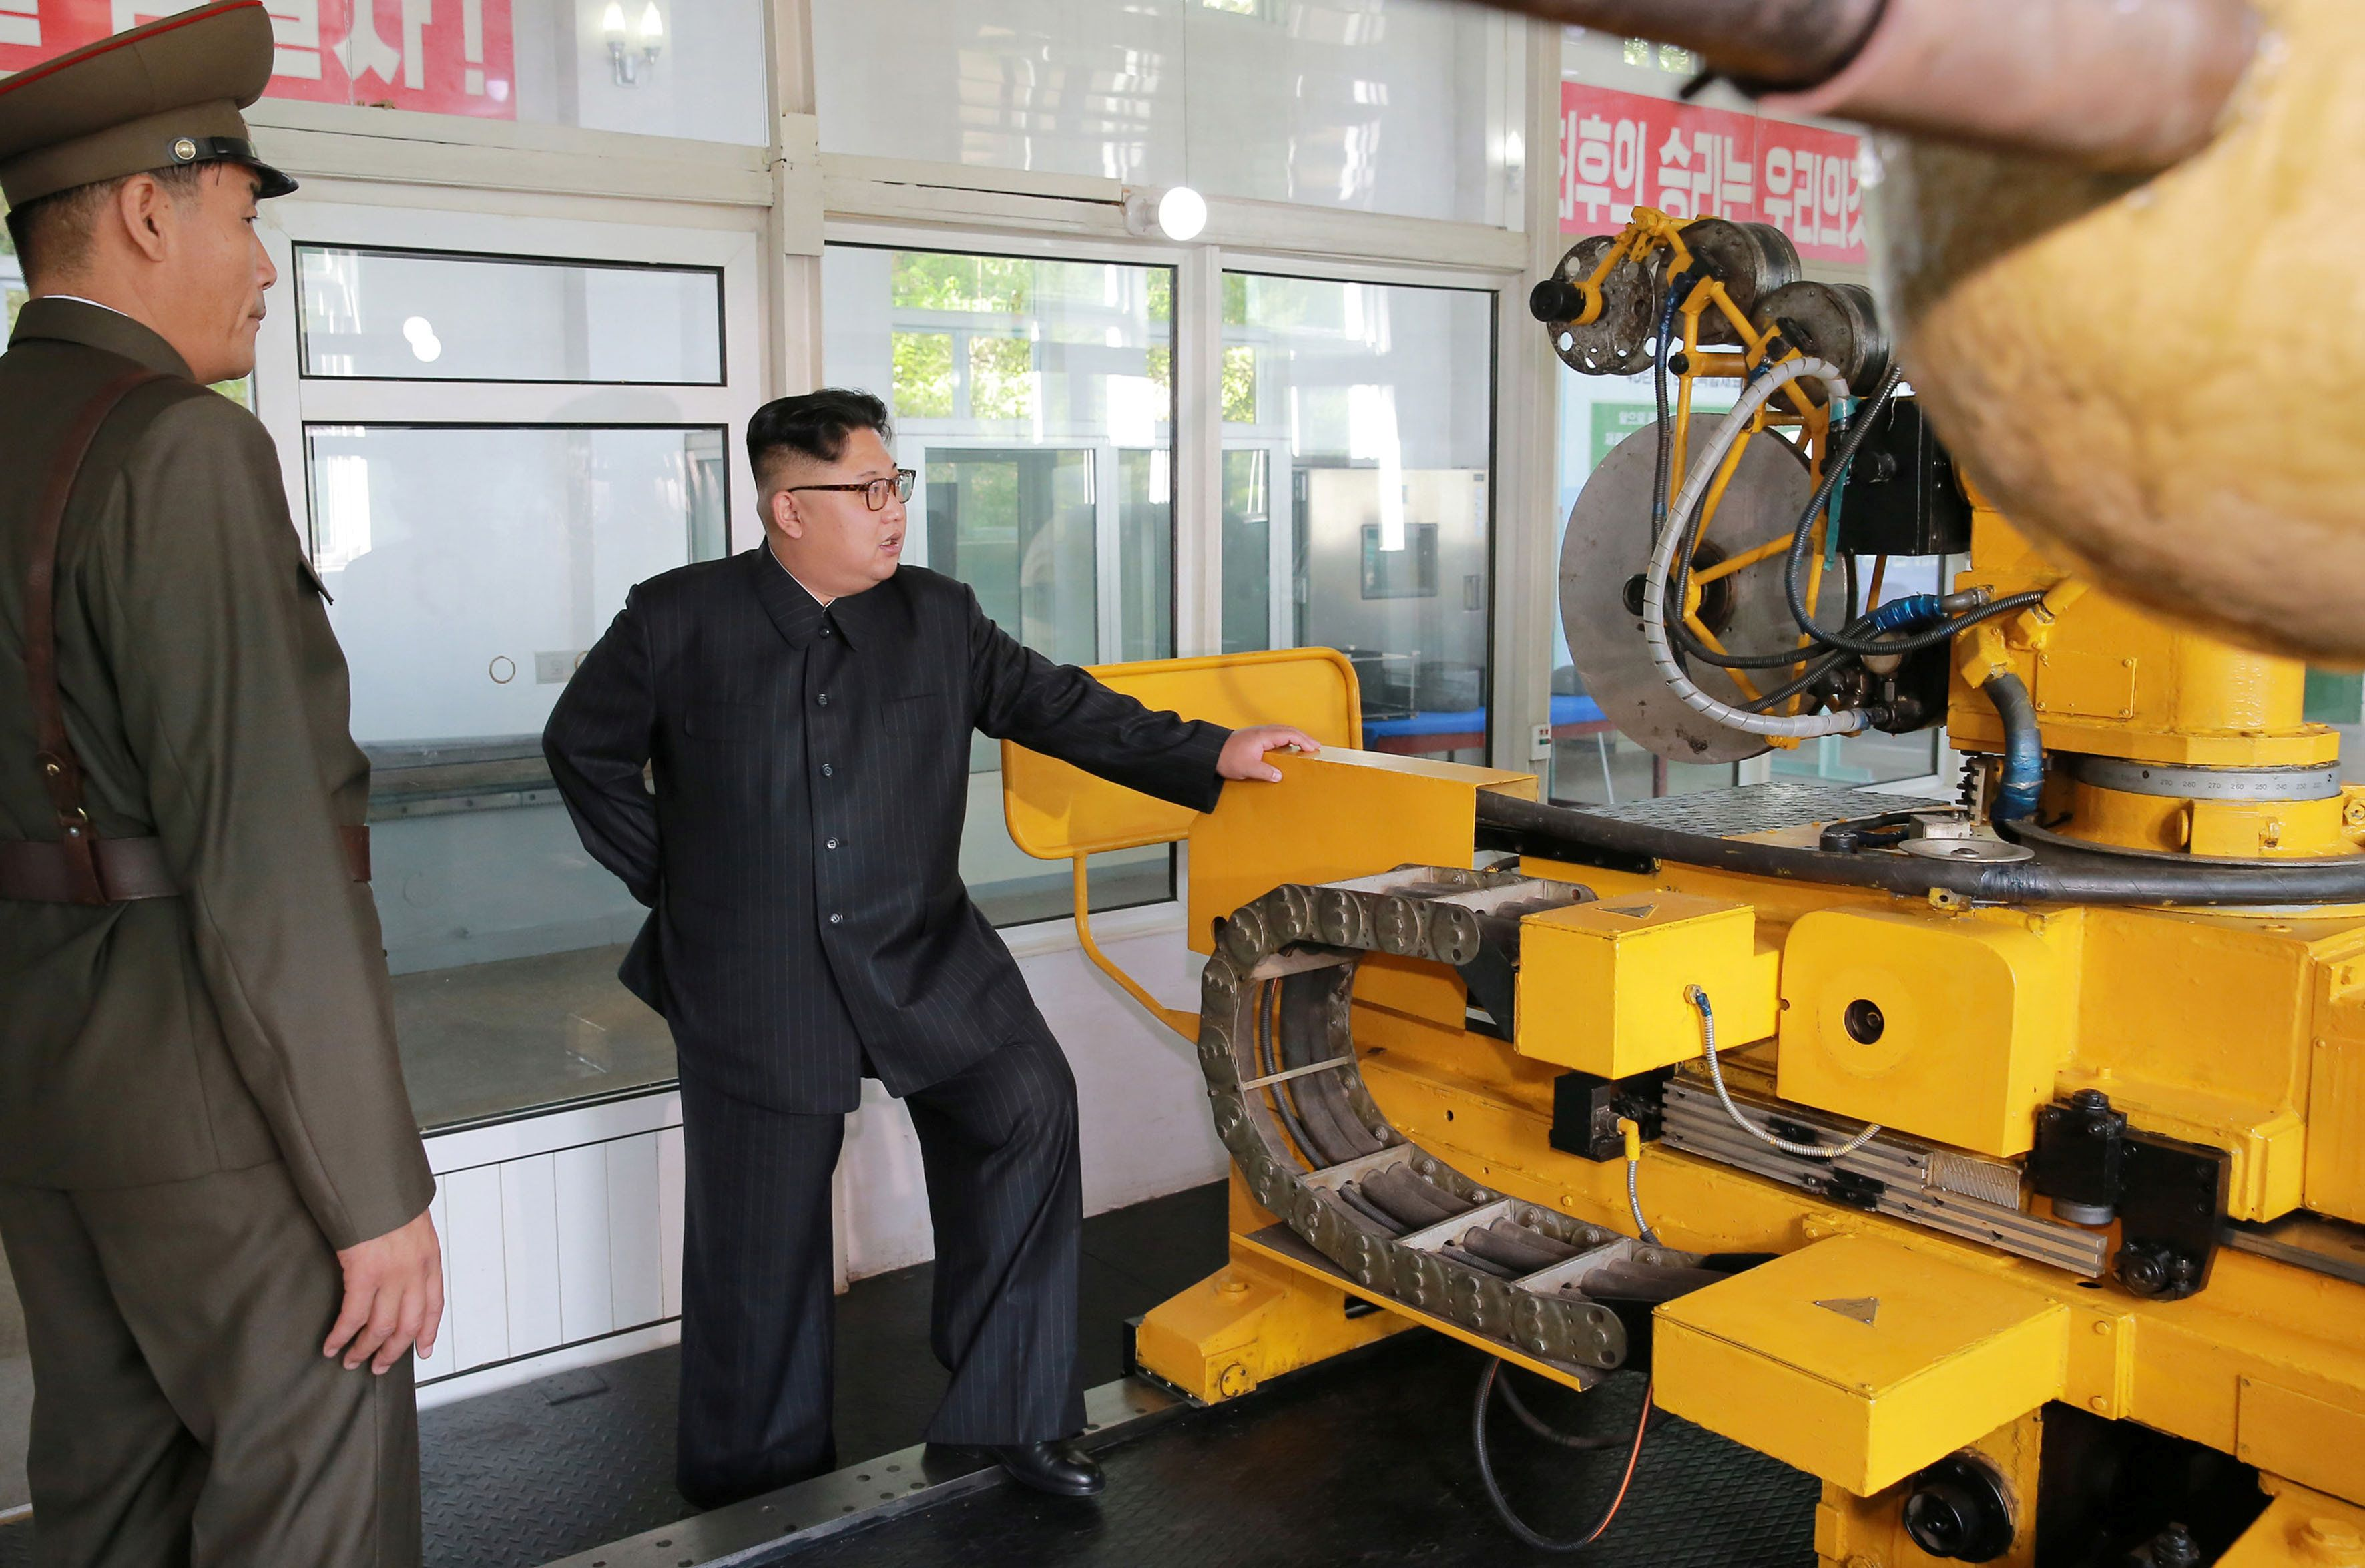 North Korean leader Kim Jong-Un looks on during a visit to the Chemical Material Institute of the Academy of Defense Science in this undated photo released by North Korea's Korean Central News Agency (KCNA) in Pyongyang on August 23, 2017.  KCNA/via REUTERS  ATTENTION EDITORS - THIS PICTURE WAS PROVIDED BY A THIRD PARTY. REUTERS IS UNABLE TO INDEPENDENTLY VERIFY THE AUTHENTICITY, CONTENT, LOCATION OR DATE OF THIS IMAGE. FOR EDITORIAL USE ONLY. NOT FOR SALE FOR MARKETING OR ADVERTISING CAMPAIGNS. NO THIRD PARTY SALES. NOT FOR USE BY REUTERS THIRD PARTY DISTRIBUTORS. SOUTH KOREA OUT. NO COMMERCIAL OR EDITORIAL SALES IN SOUTH KOREA. THIS PICTURE IS DISTRIBUTED EXACTLY AS RECEIVED BY REUTERS, AS A SERVICE TO CLIENTS.